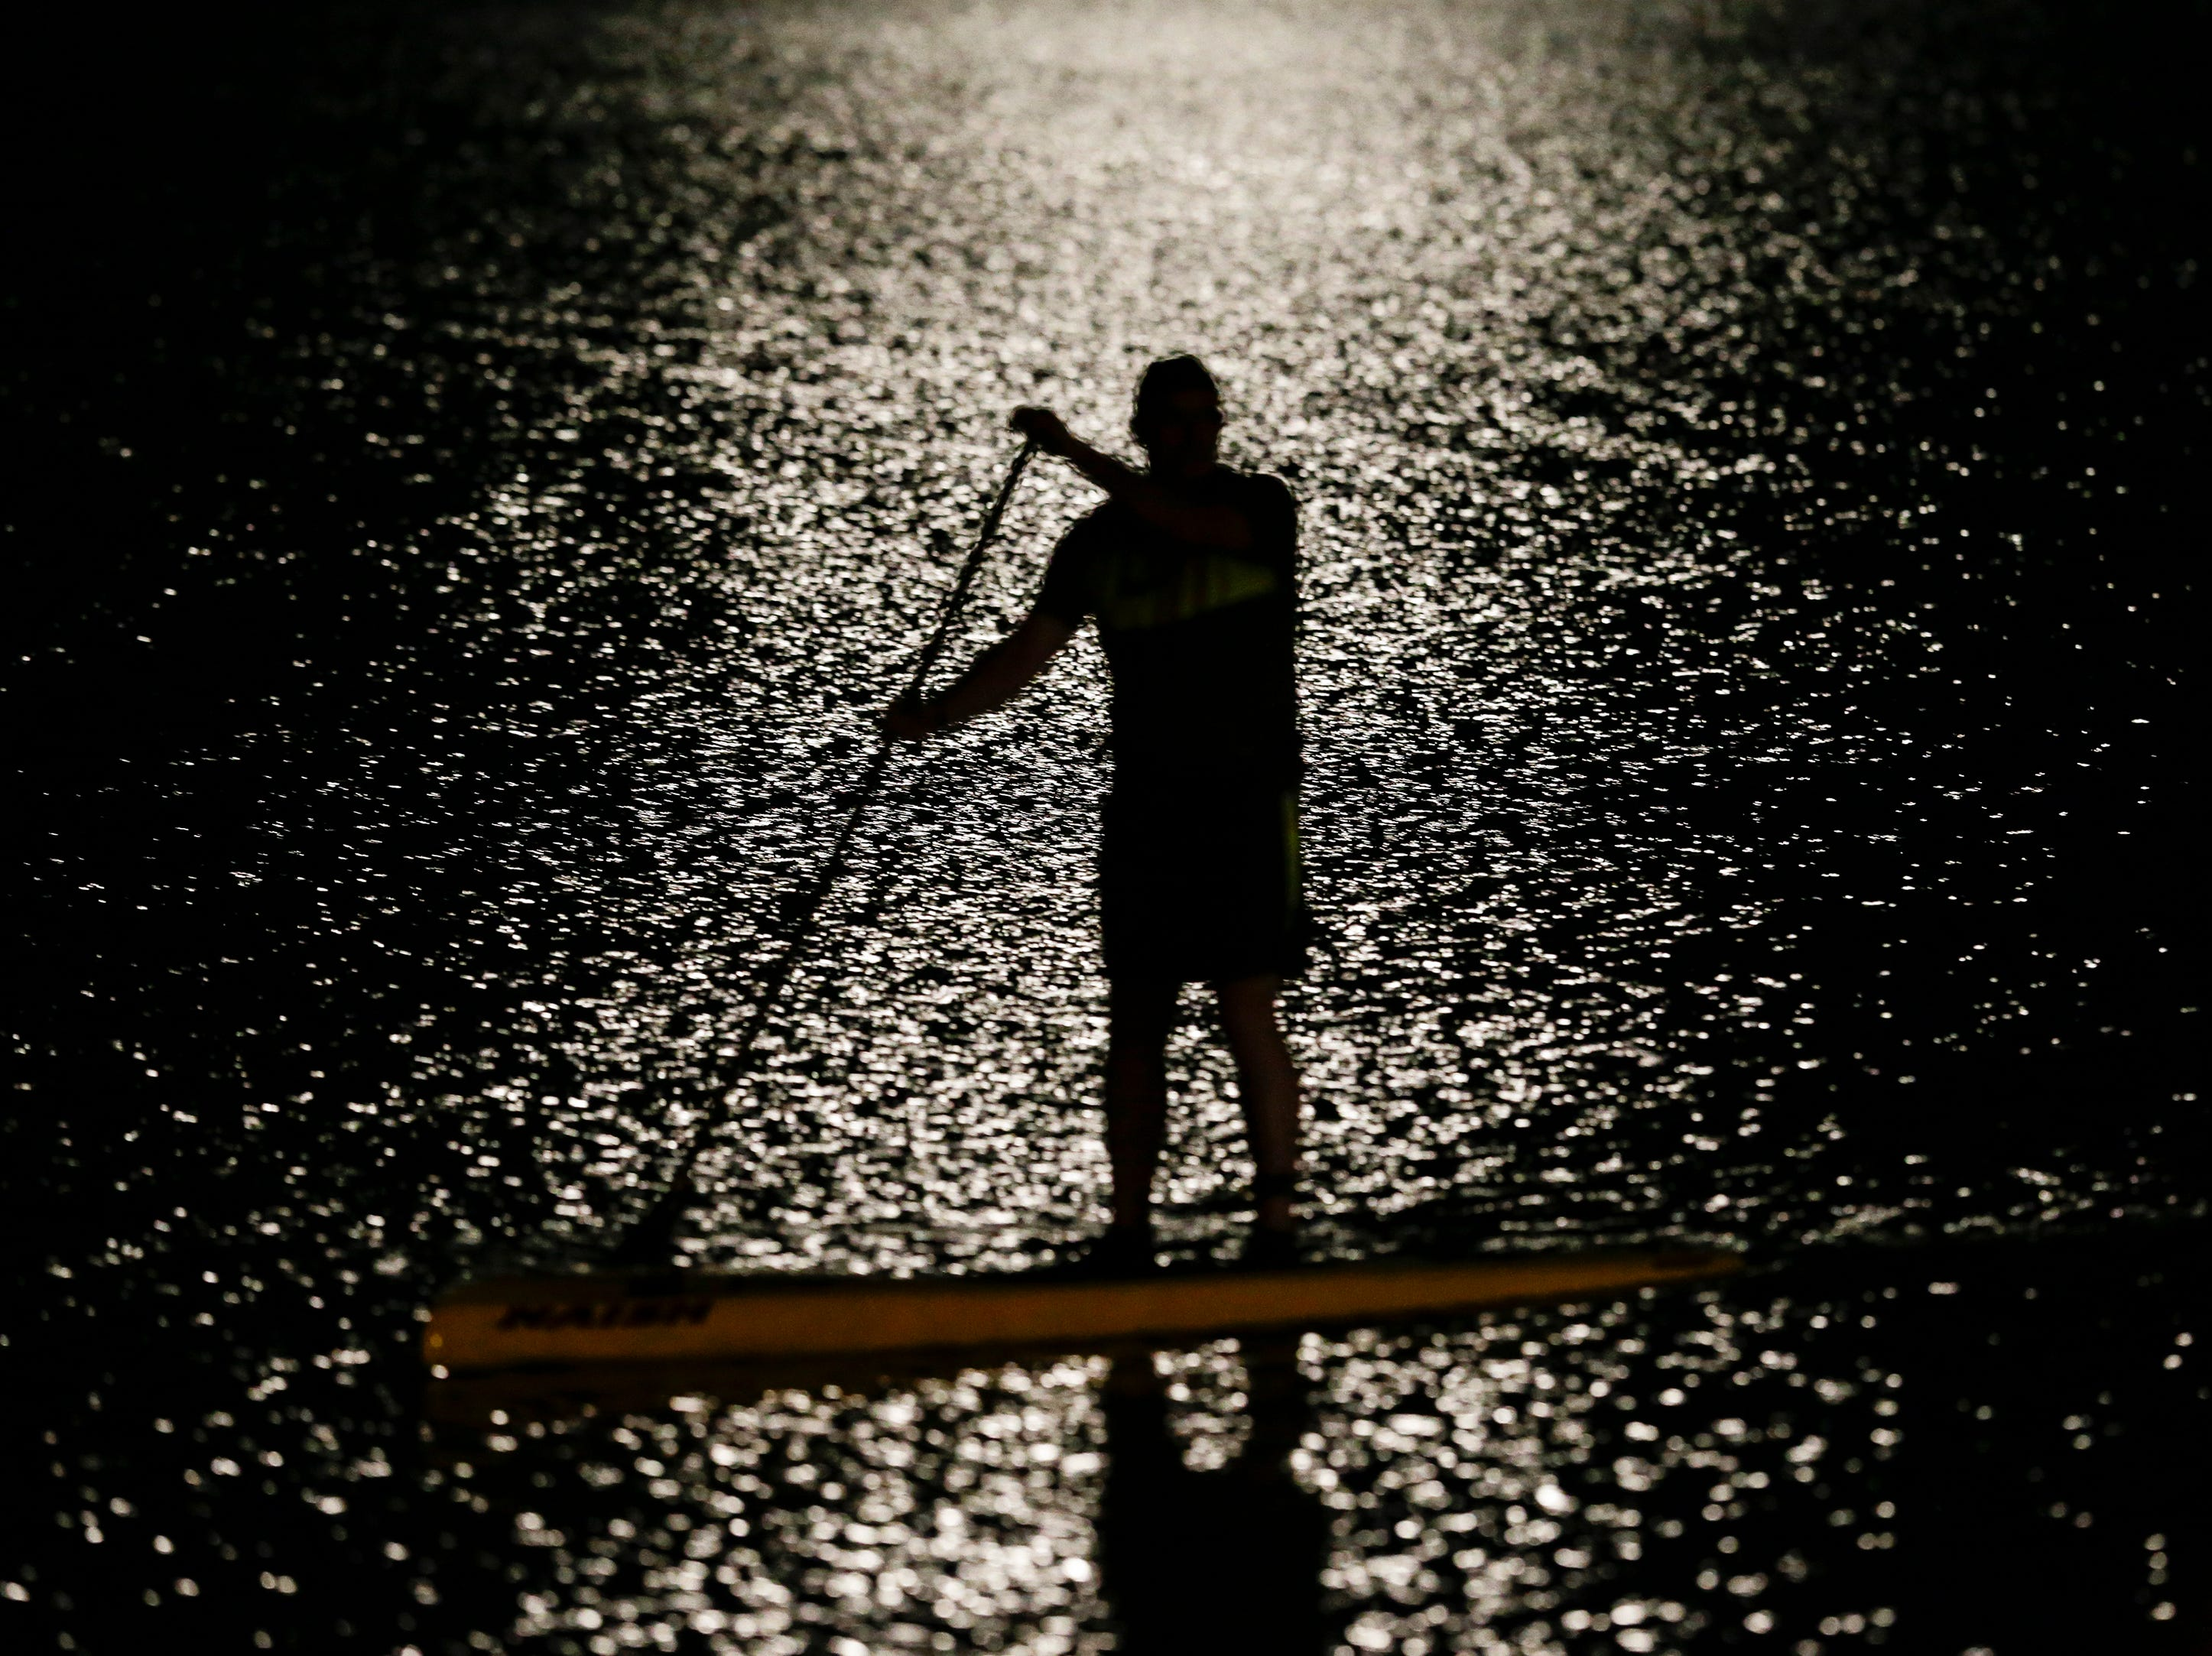 A stand-up paddle boarder is silhouetted by the full moon's reflection in Lake Michigan during a moonlight paddle Friday, July 27, 2018, in Manitowoc, Wis. Josh Clark/USA TODAY NETWORK-Wisconsin